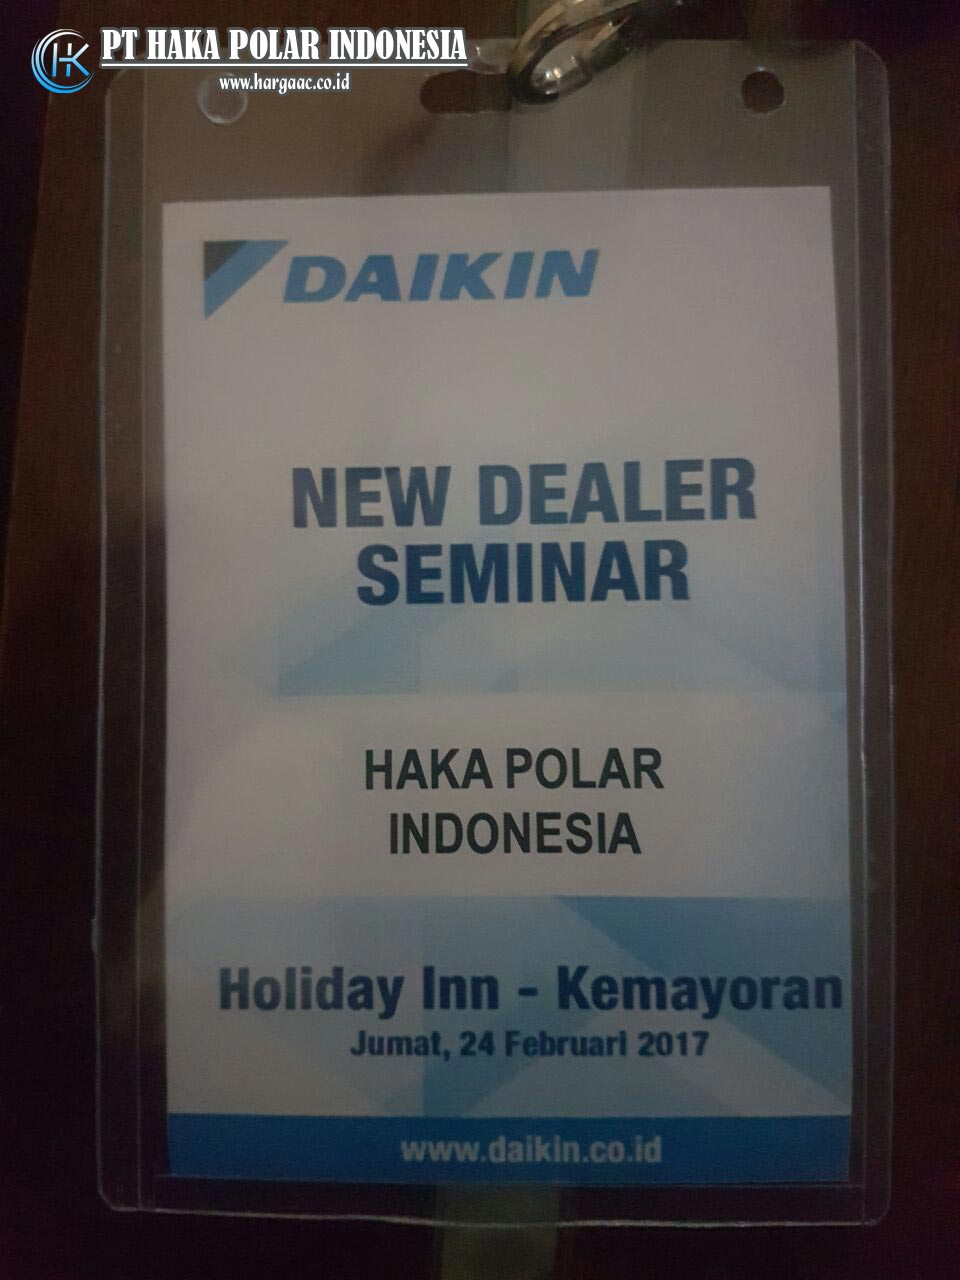 Daikin New Dealer Seminar 2017 di Holiday Inn